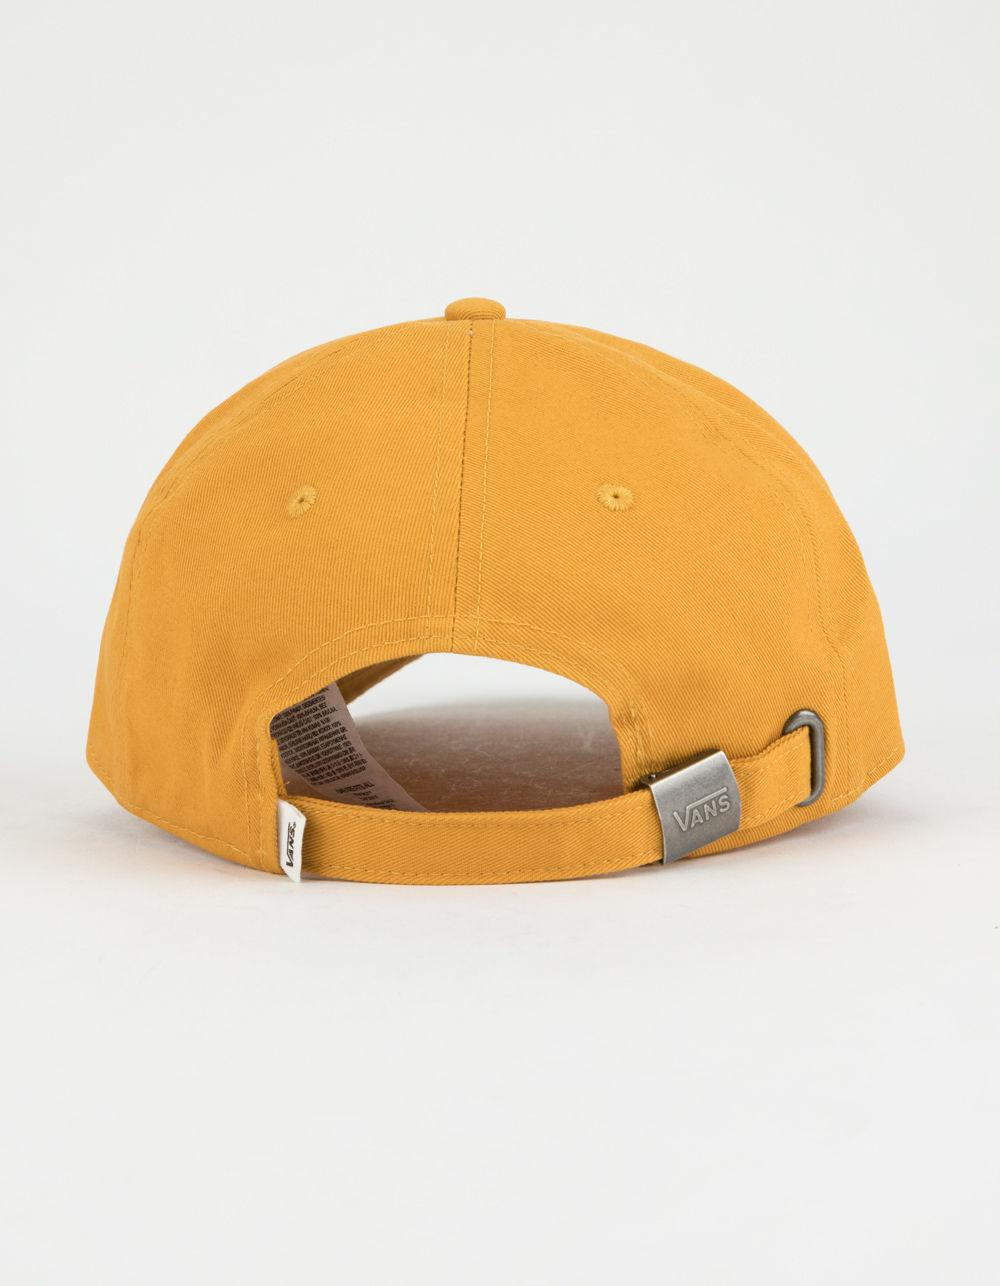 8a0fa44146bd3 Vans Court Side Womens Dad Hat in Yellow - Lyst